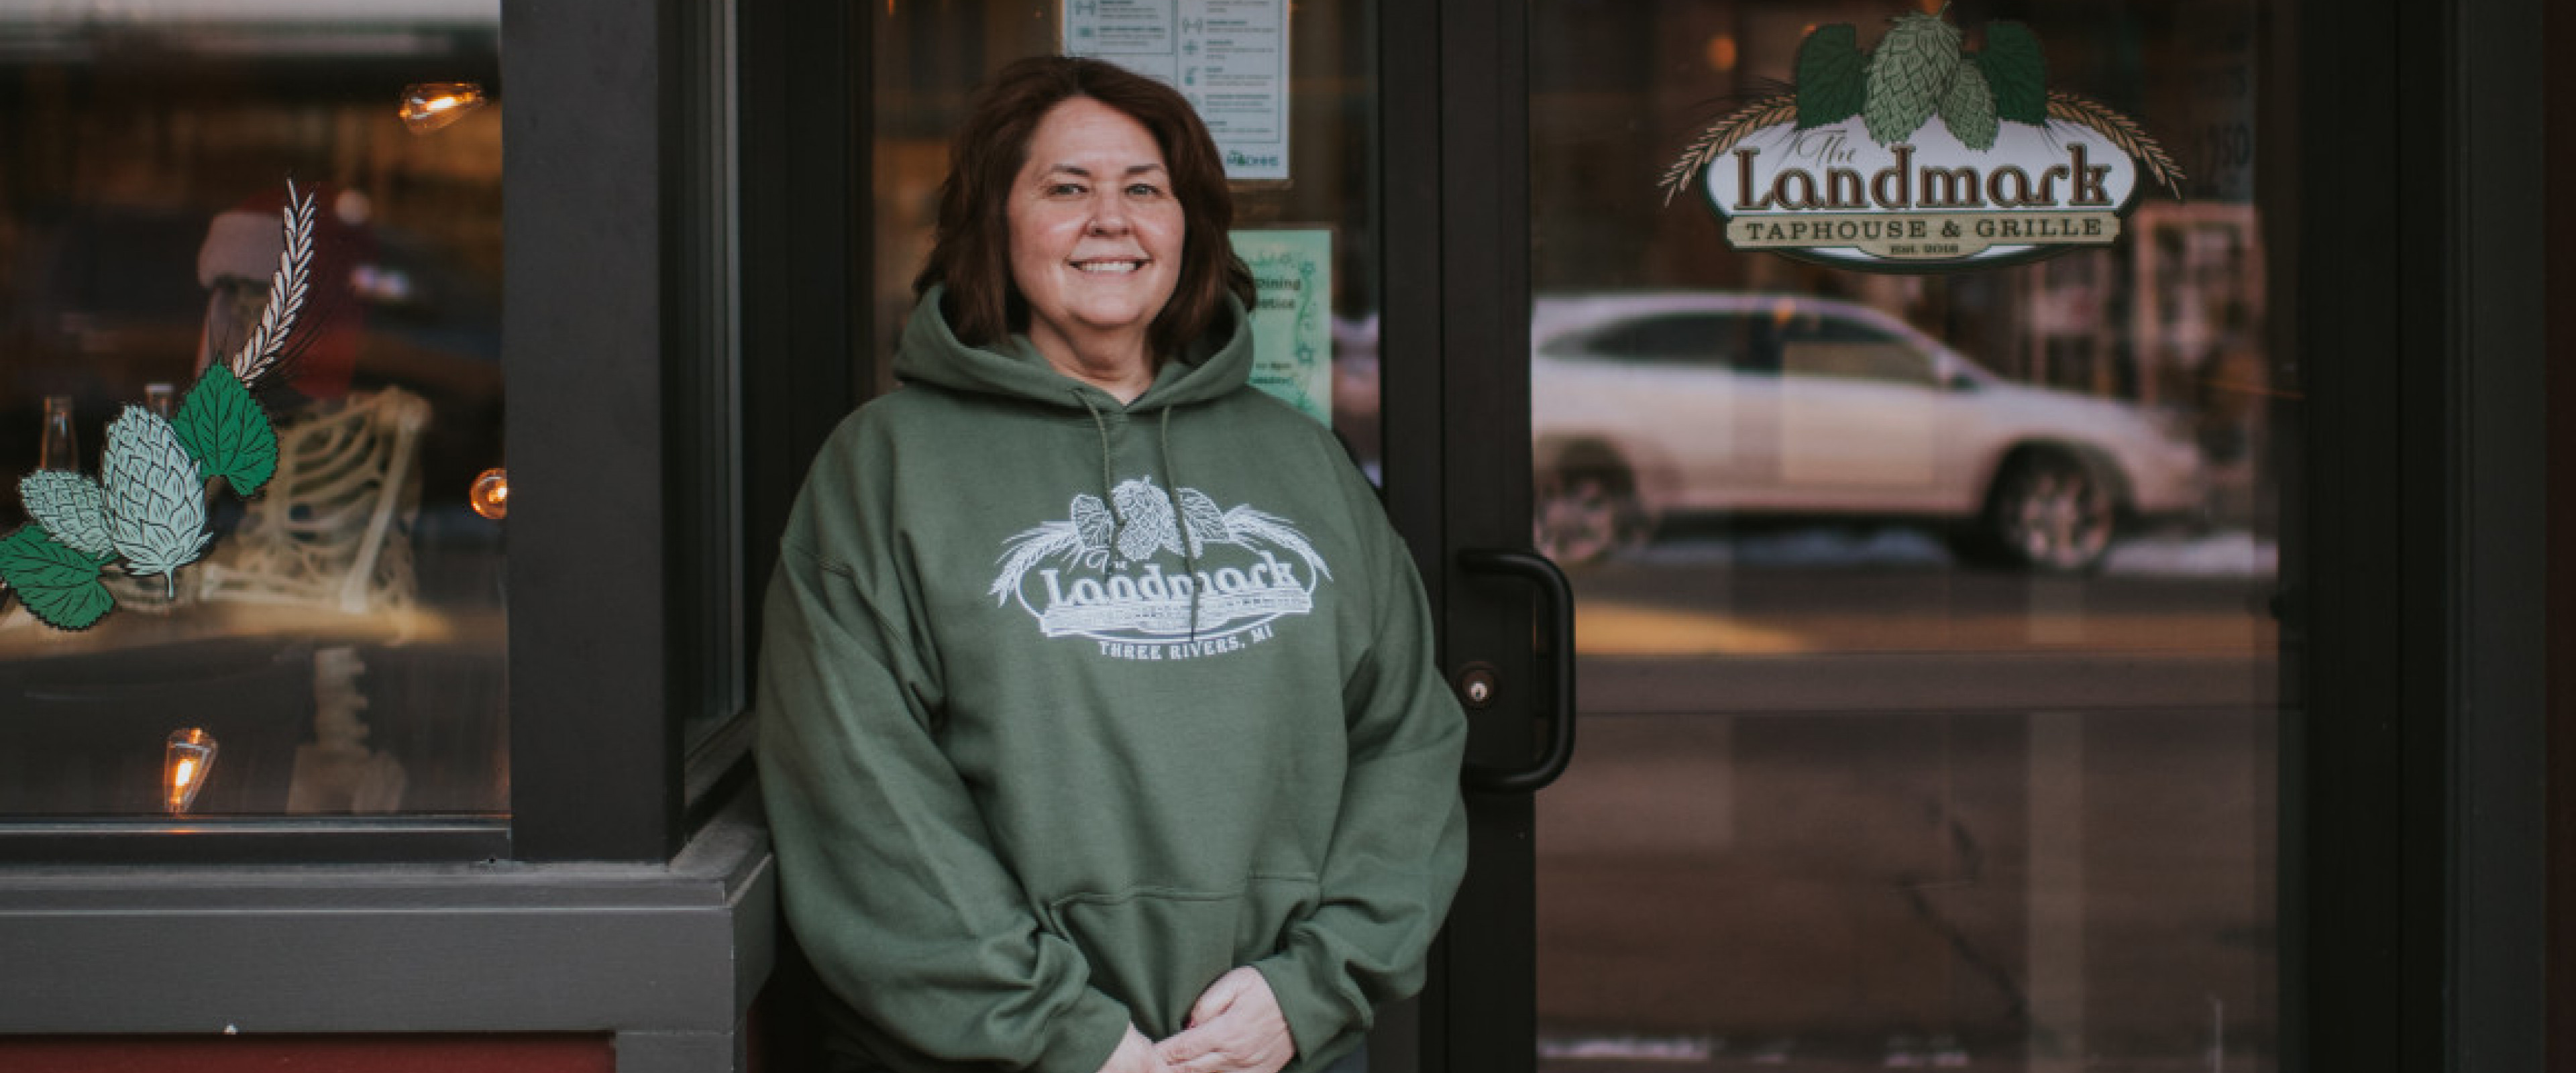 Nancy Russell, owner of the Landmark Taphouse and Grille, smiles in front of her restaurant.